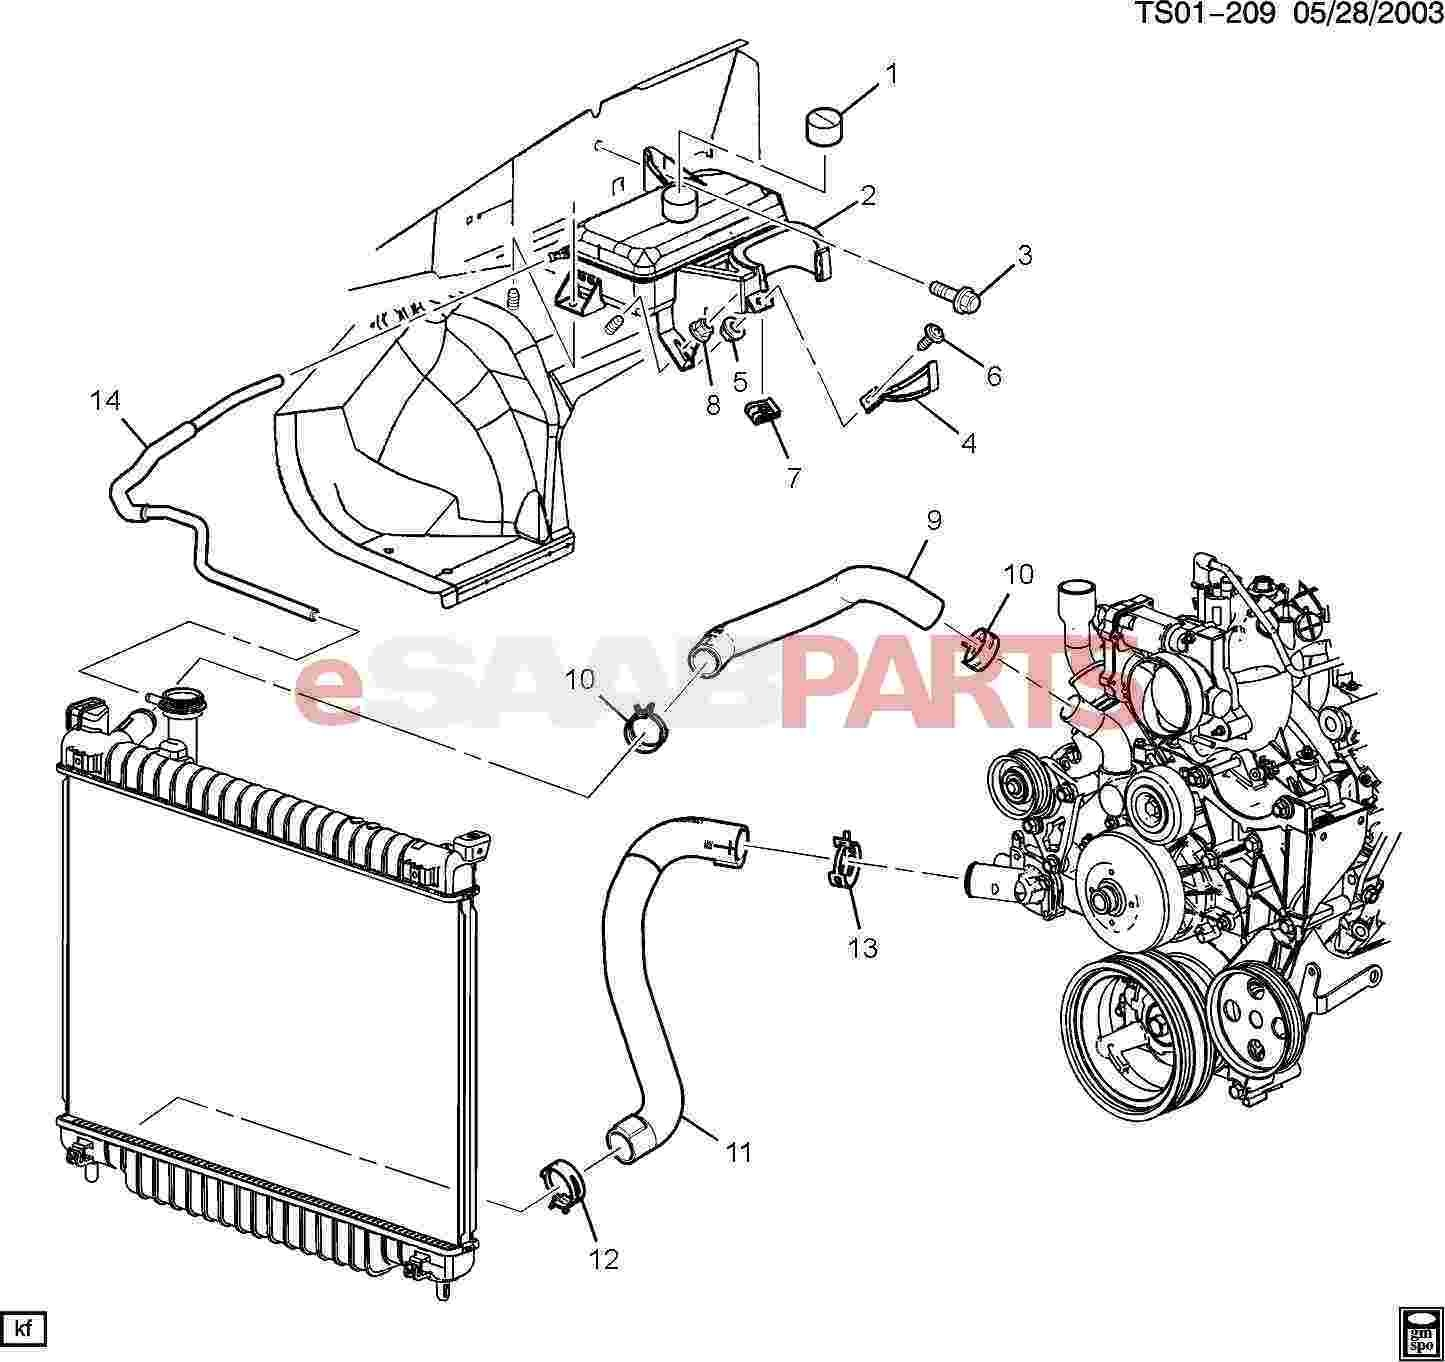 Automotive Cooling System Diagram ] Saab Nut Hex with Con Wa M6x1 5 7 Thk 16 Od 9